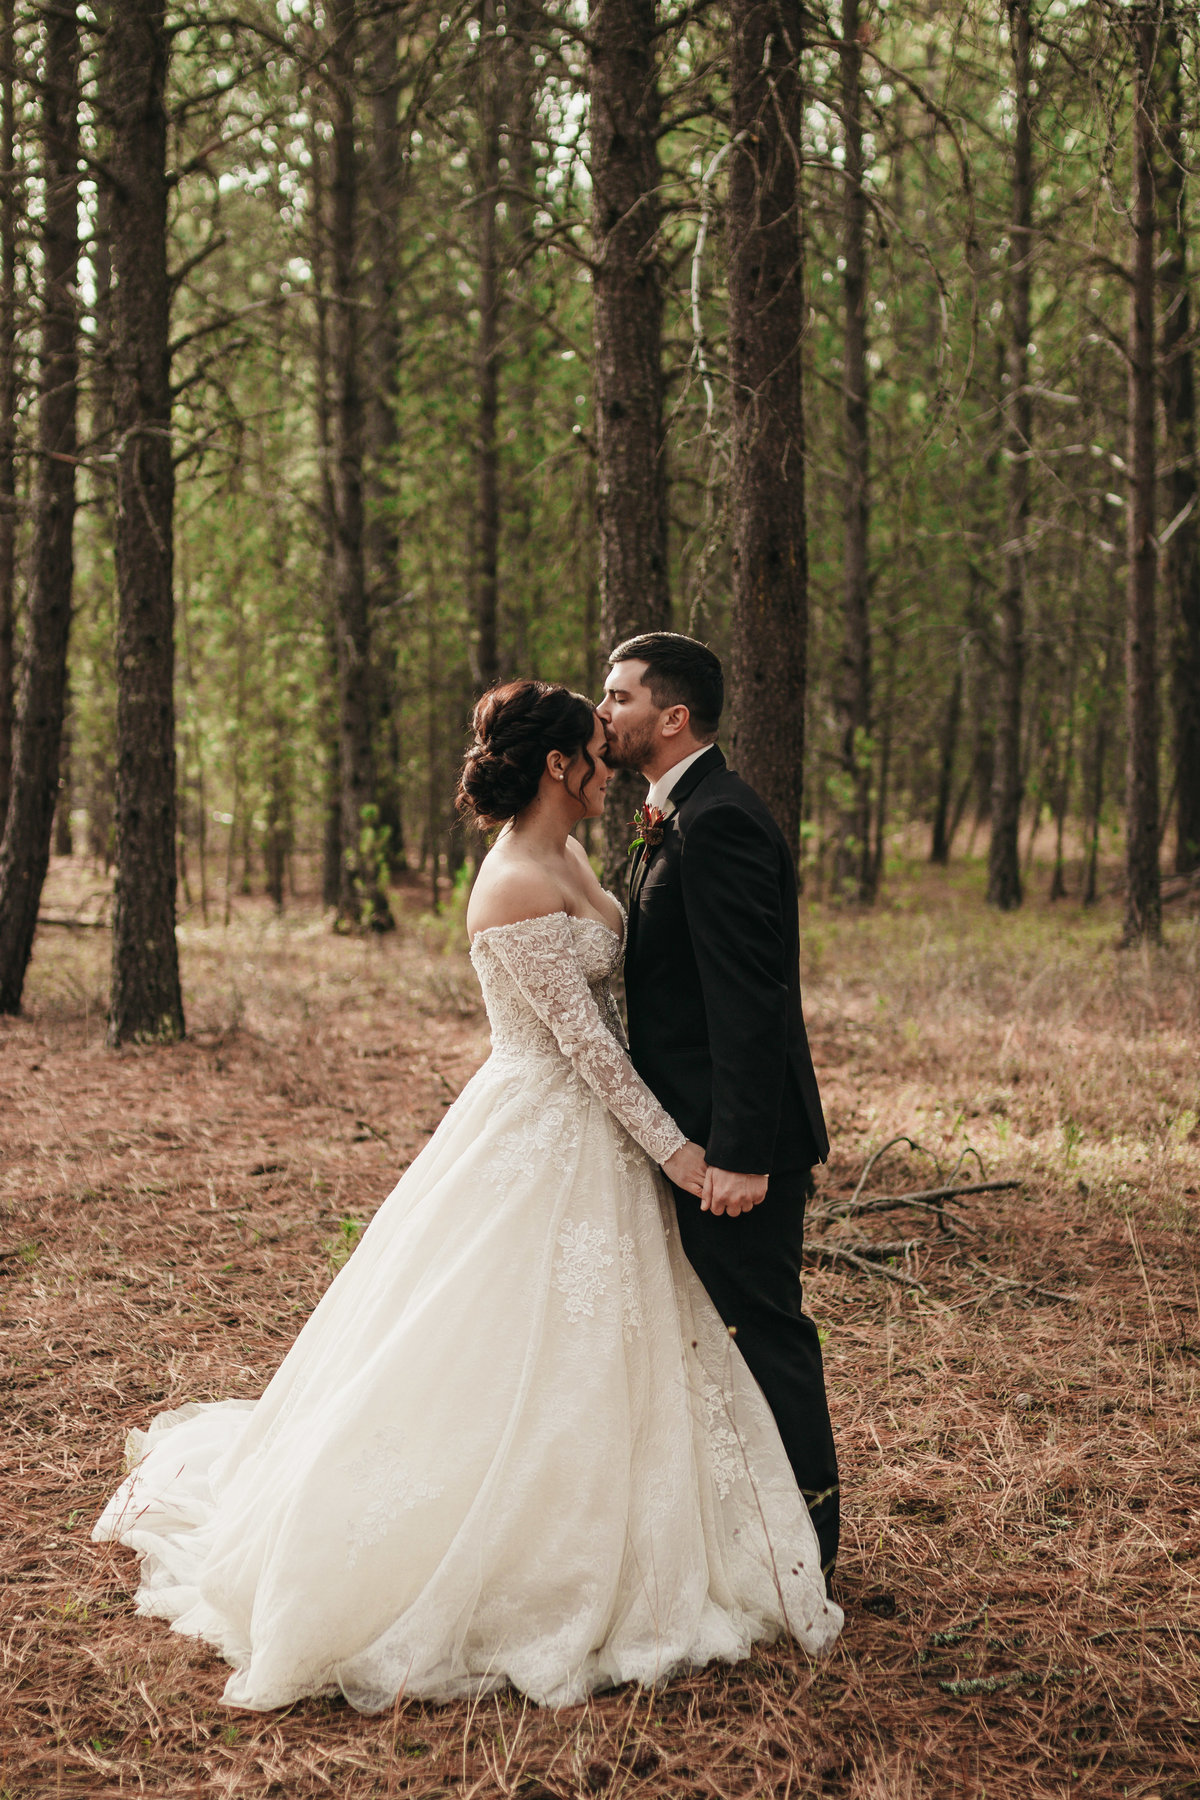 Wedding Photographer in Spokane, Washington - Clara Jay Photo.jpg_-17